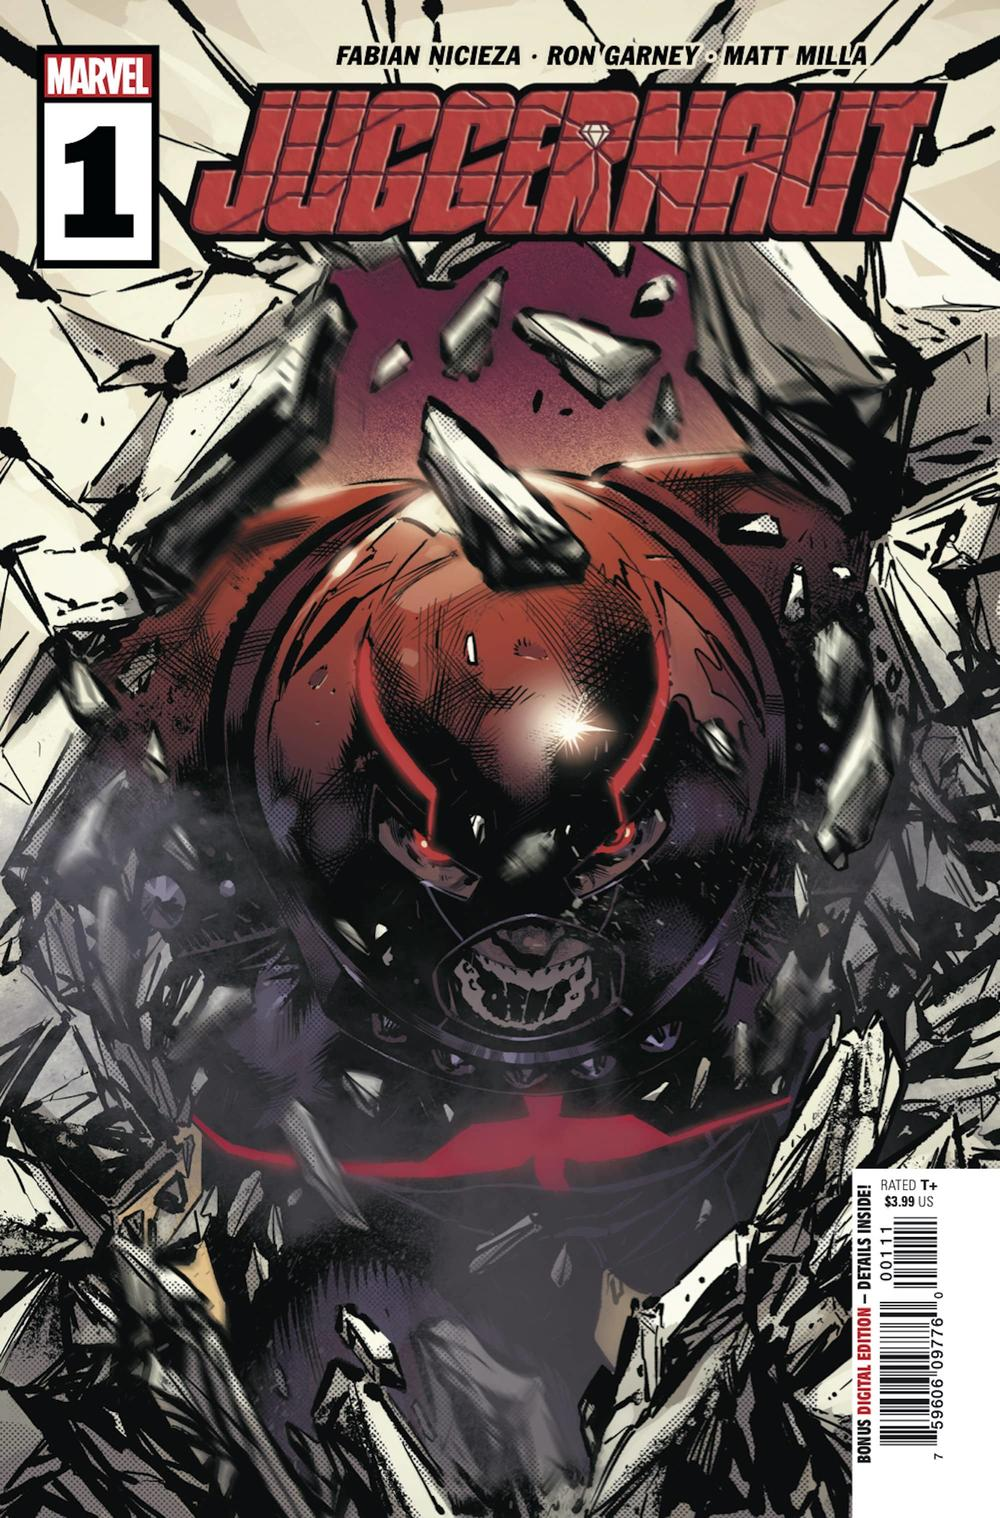 JUGGERNAUT #1 cover by Geoff Shaw and Matt Milla